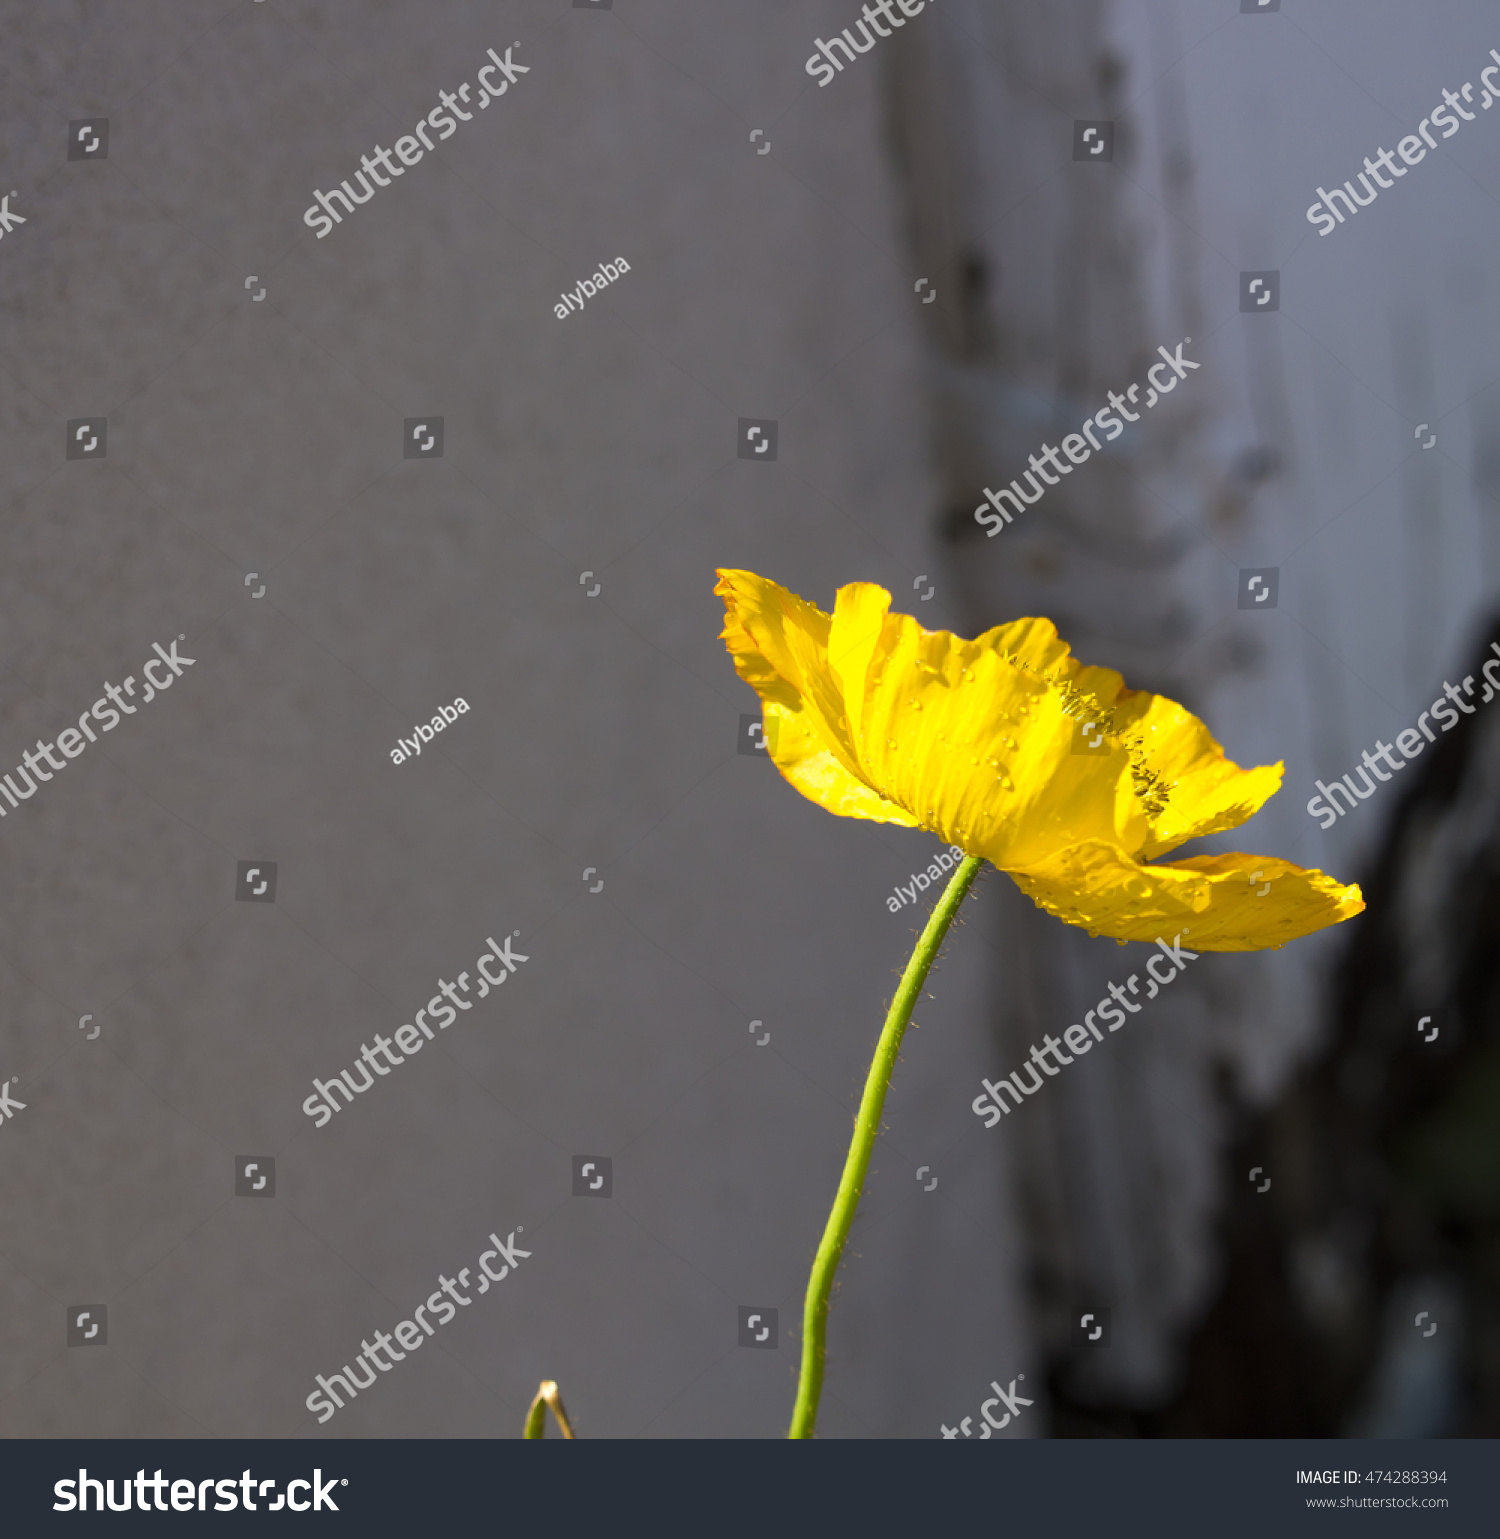 Bright Yellow Poppies Flowering Plants In The Subfamily